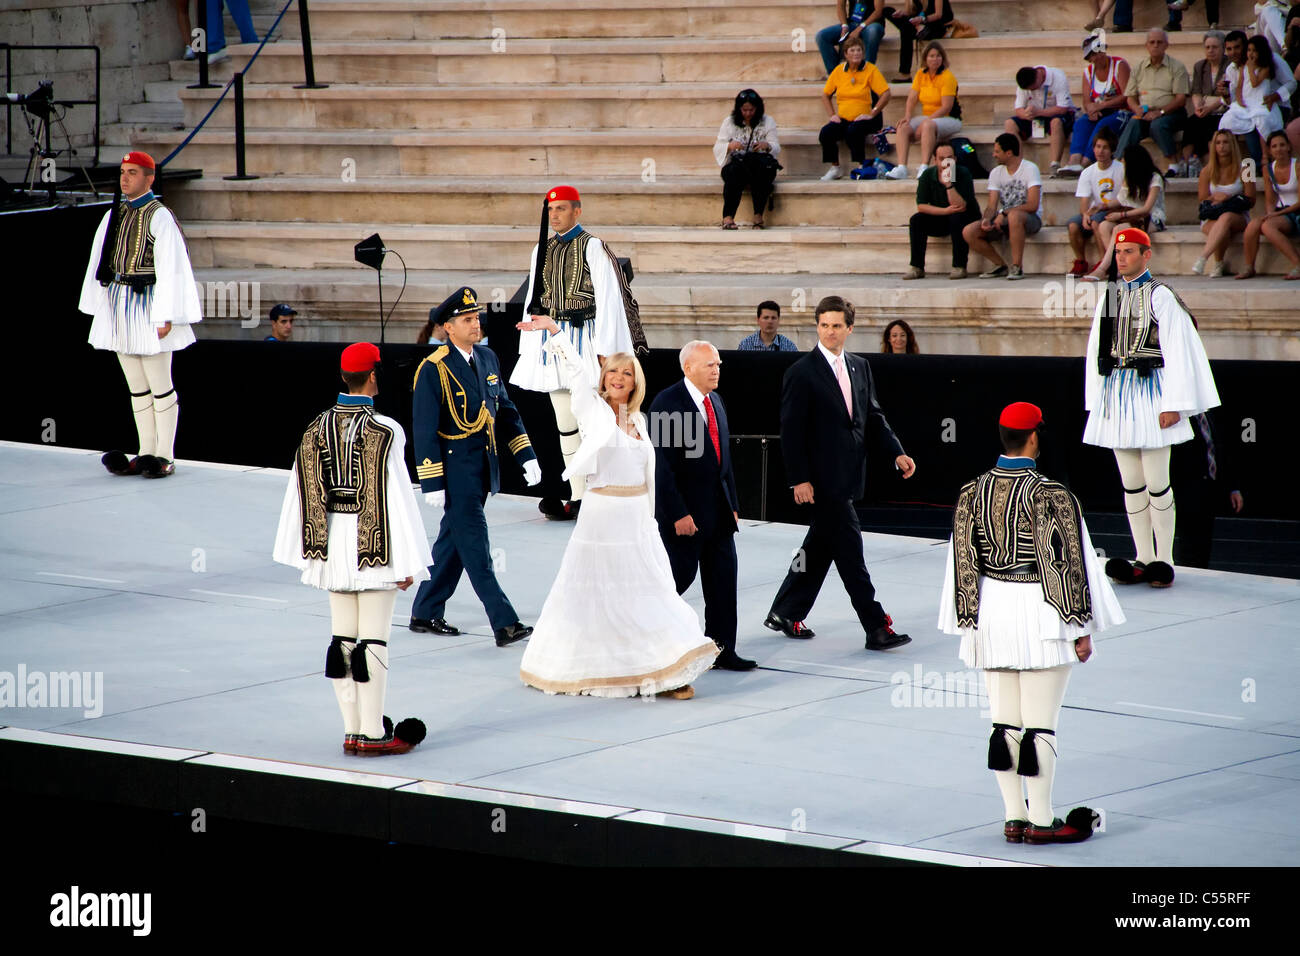 Athens 2011 Special Olympics Opening Ceremony - Despotopoulou, Papoulias and Shriver entering stadium - Stock Image